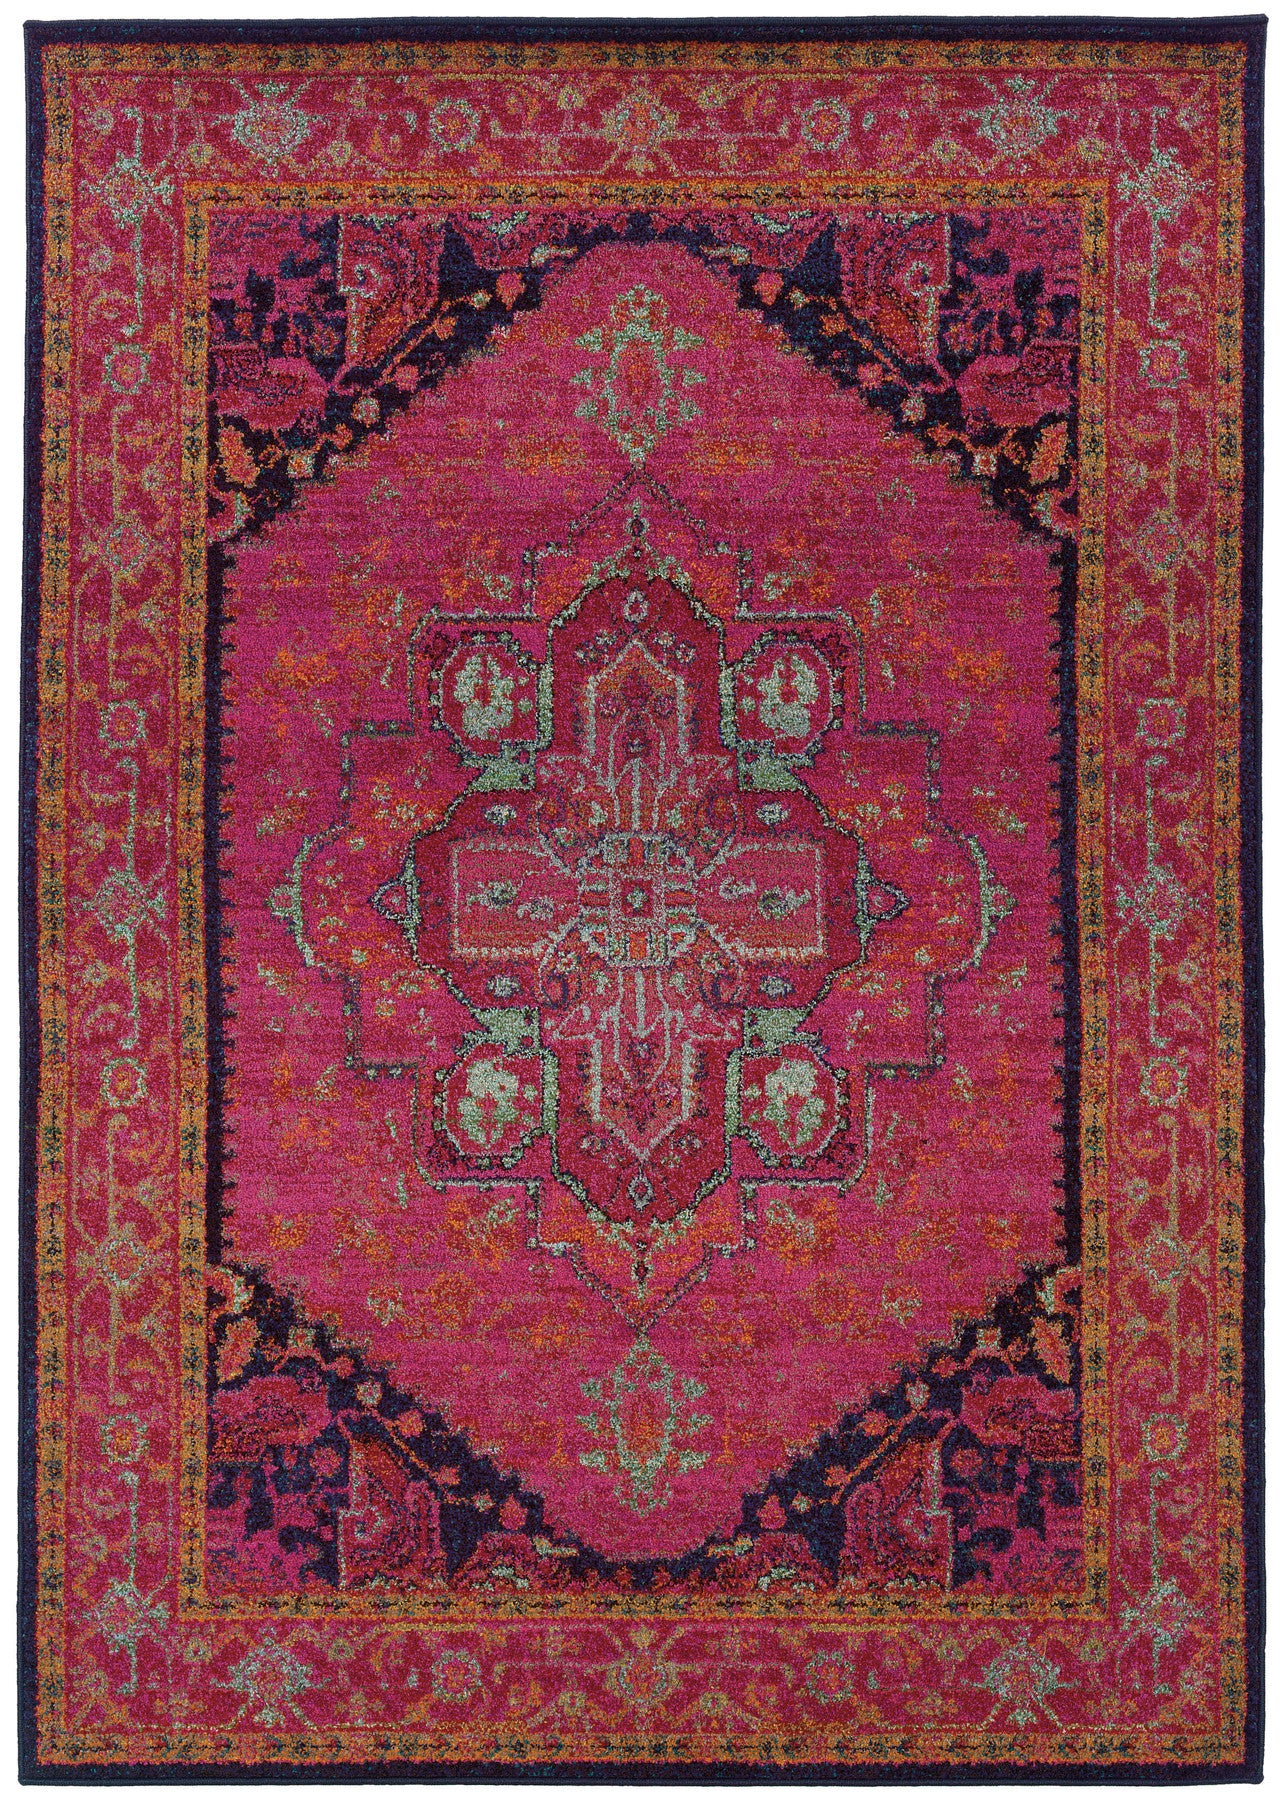 High Quality Pink Moroccan Style Rug